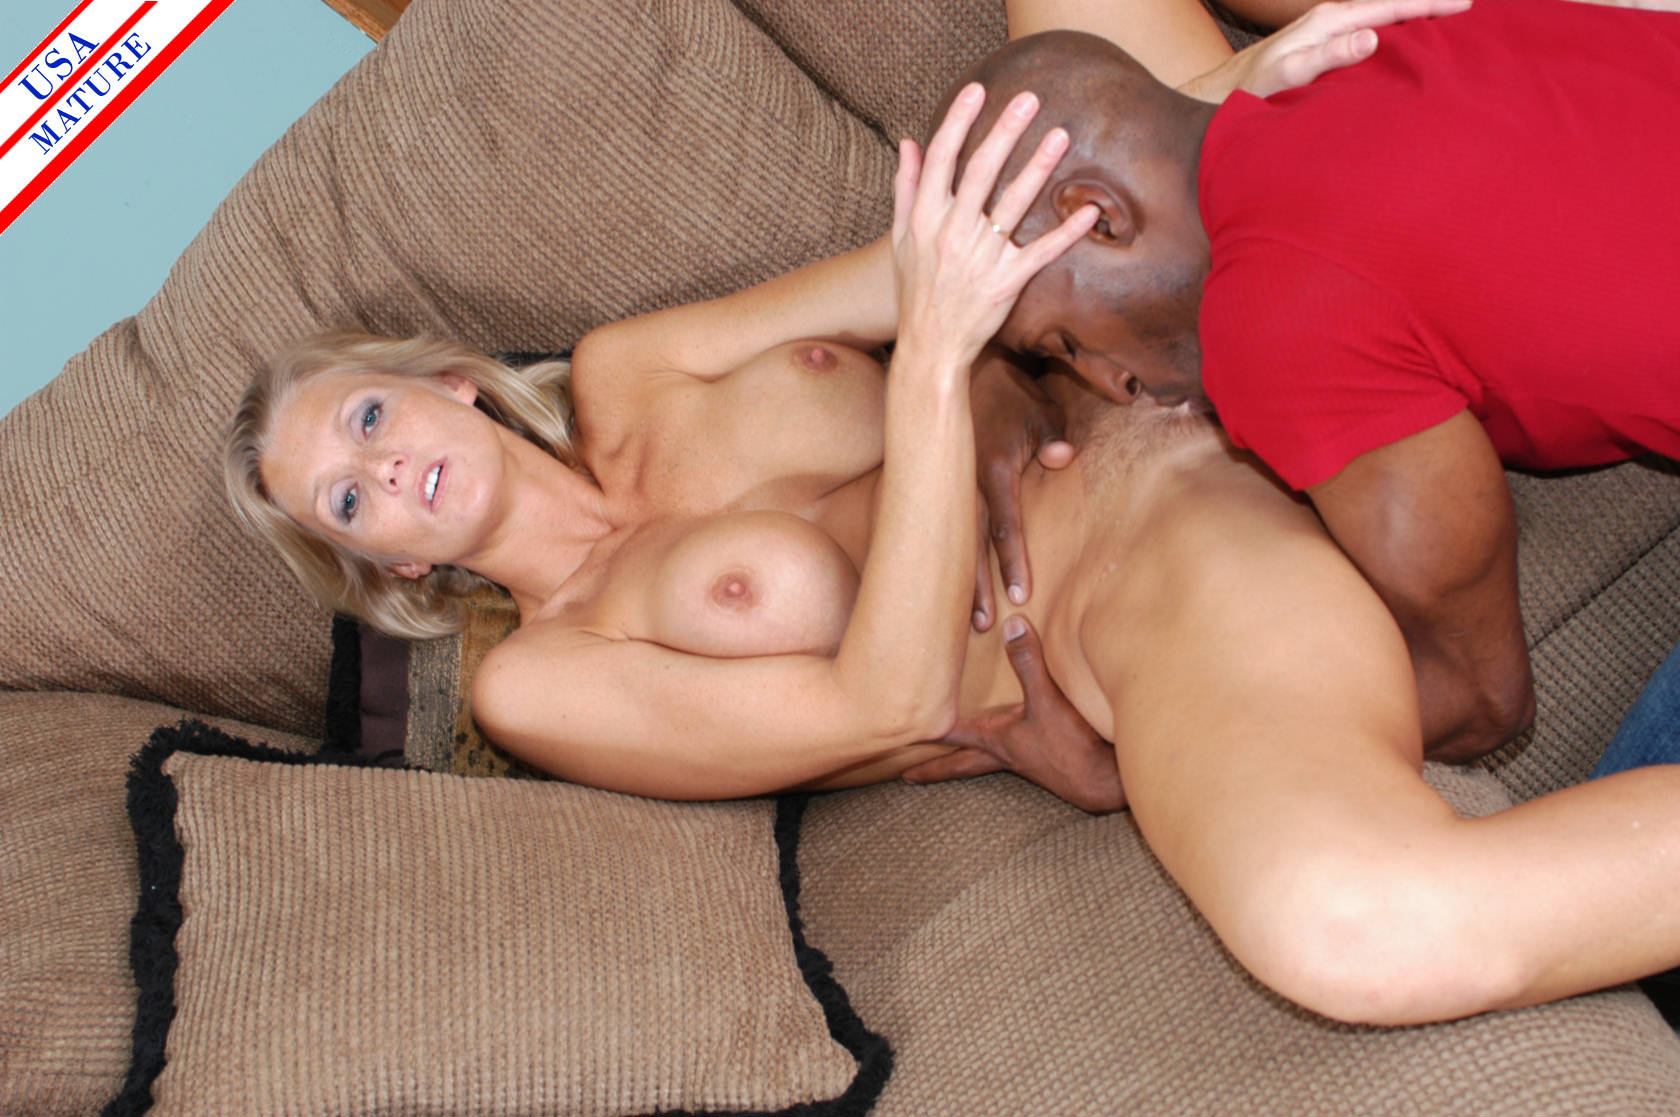 Free nyloned milf action movies would like